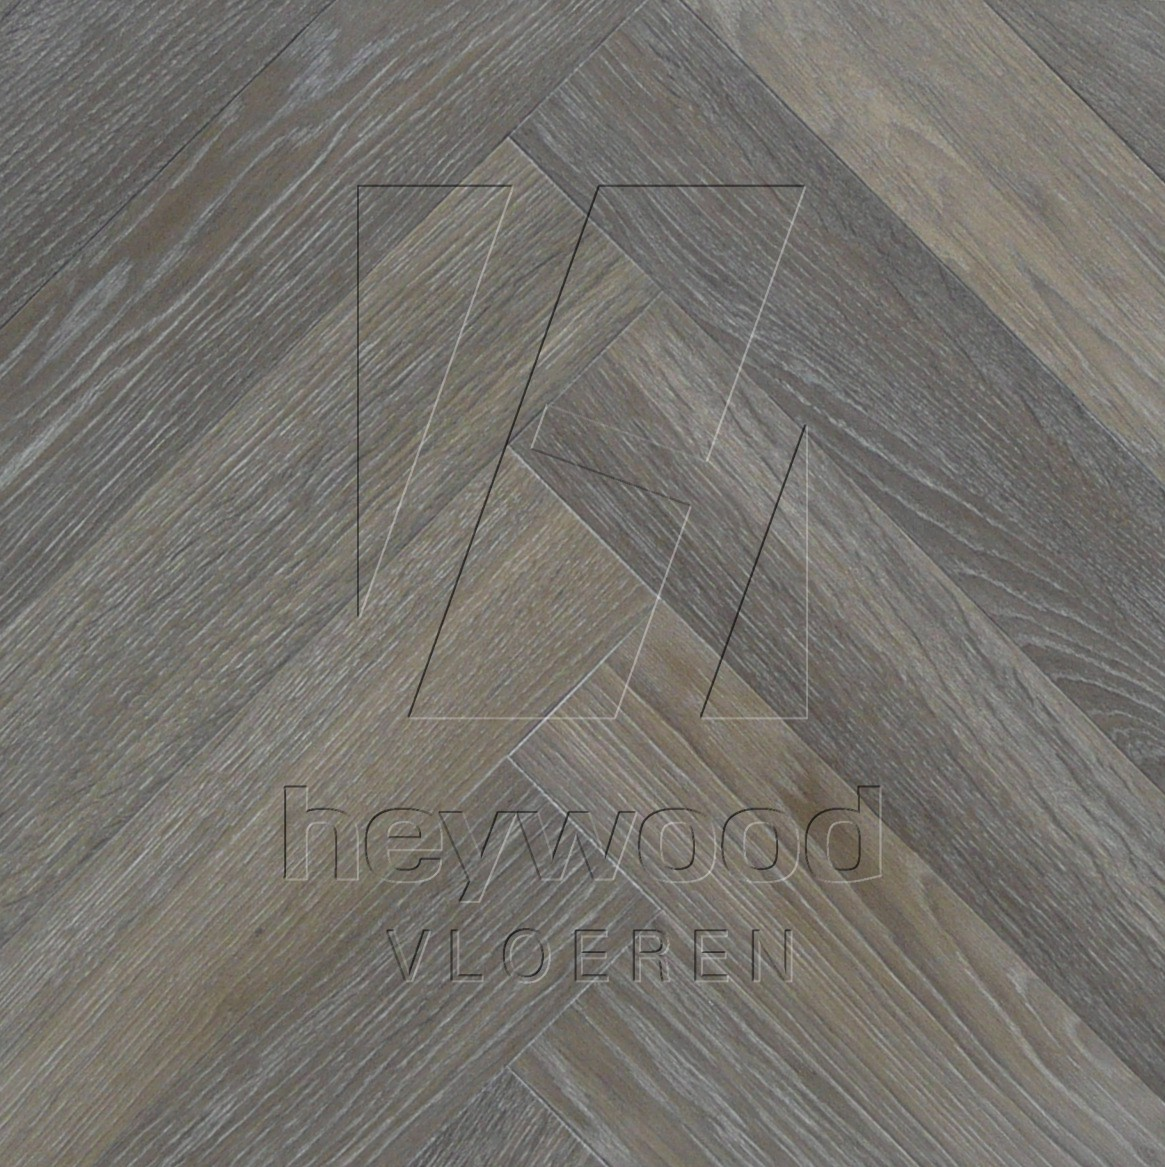 St. Andrews in Herringbone of Pattern & Panel Floors